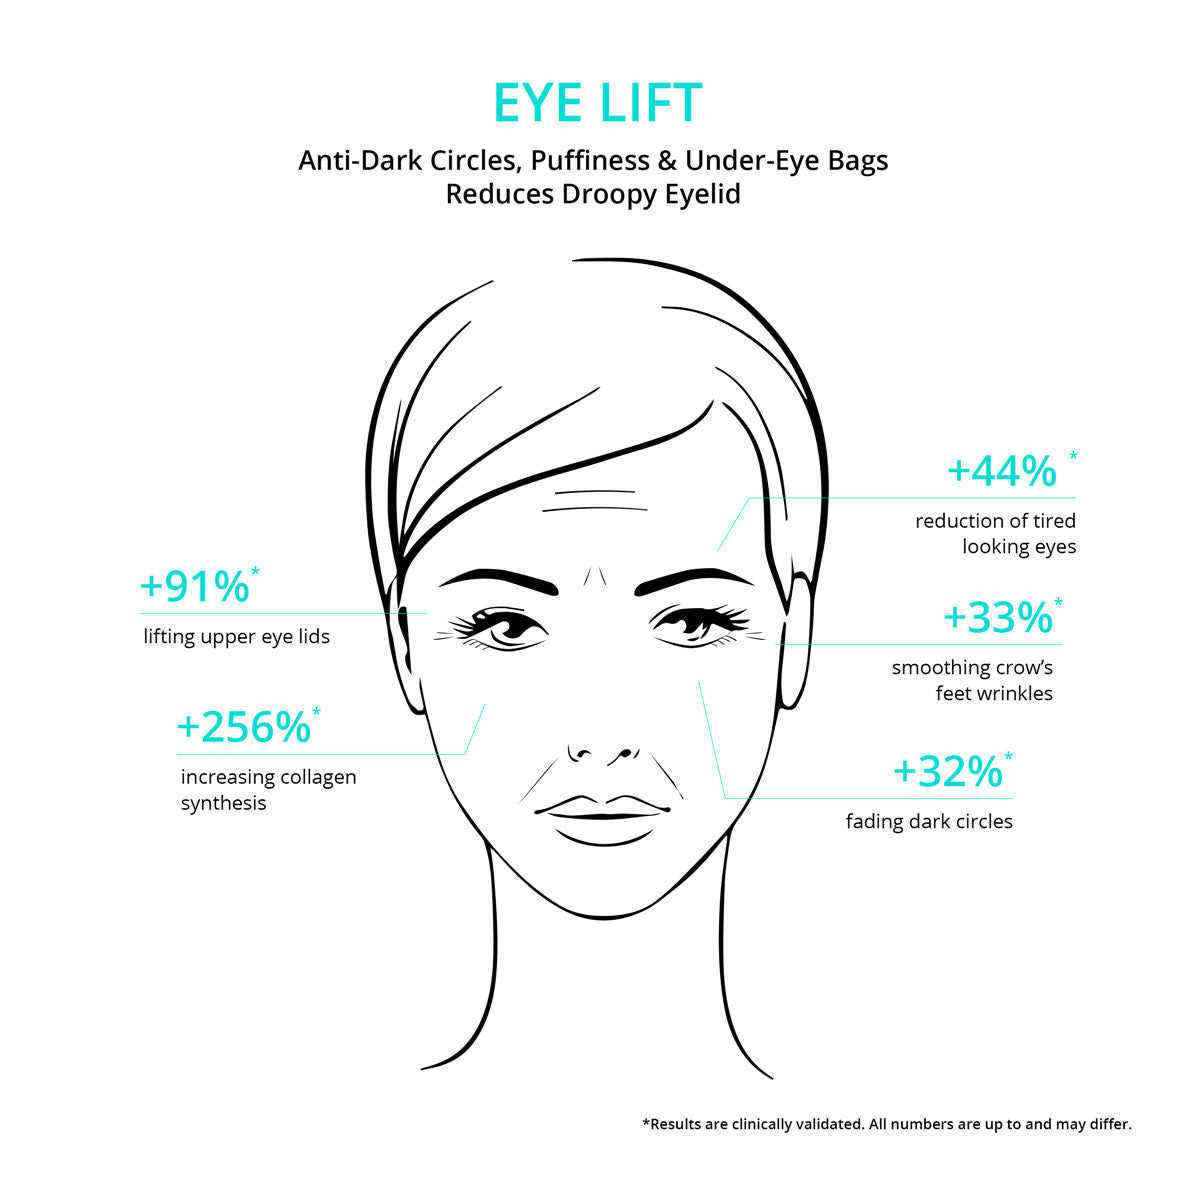 Eye Lift Benefits from CNC botanics